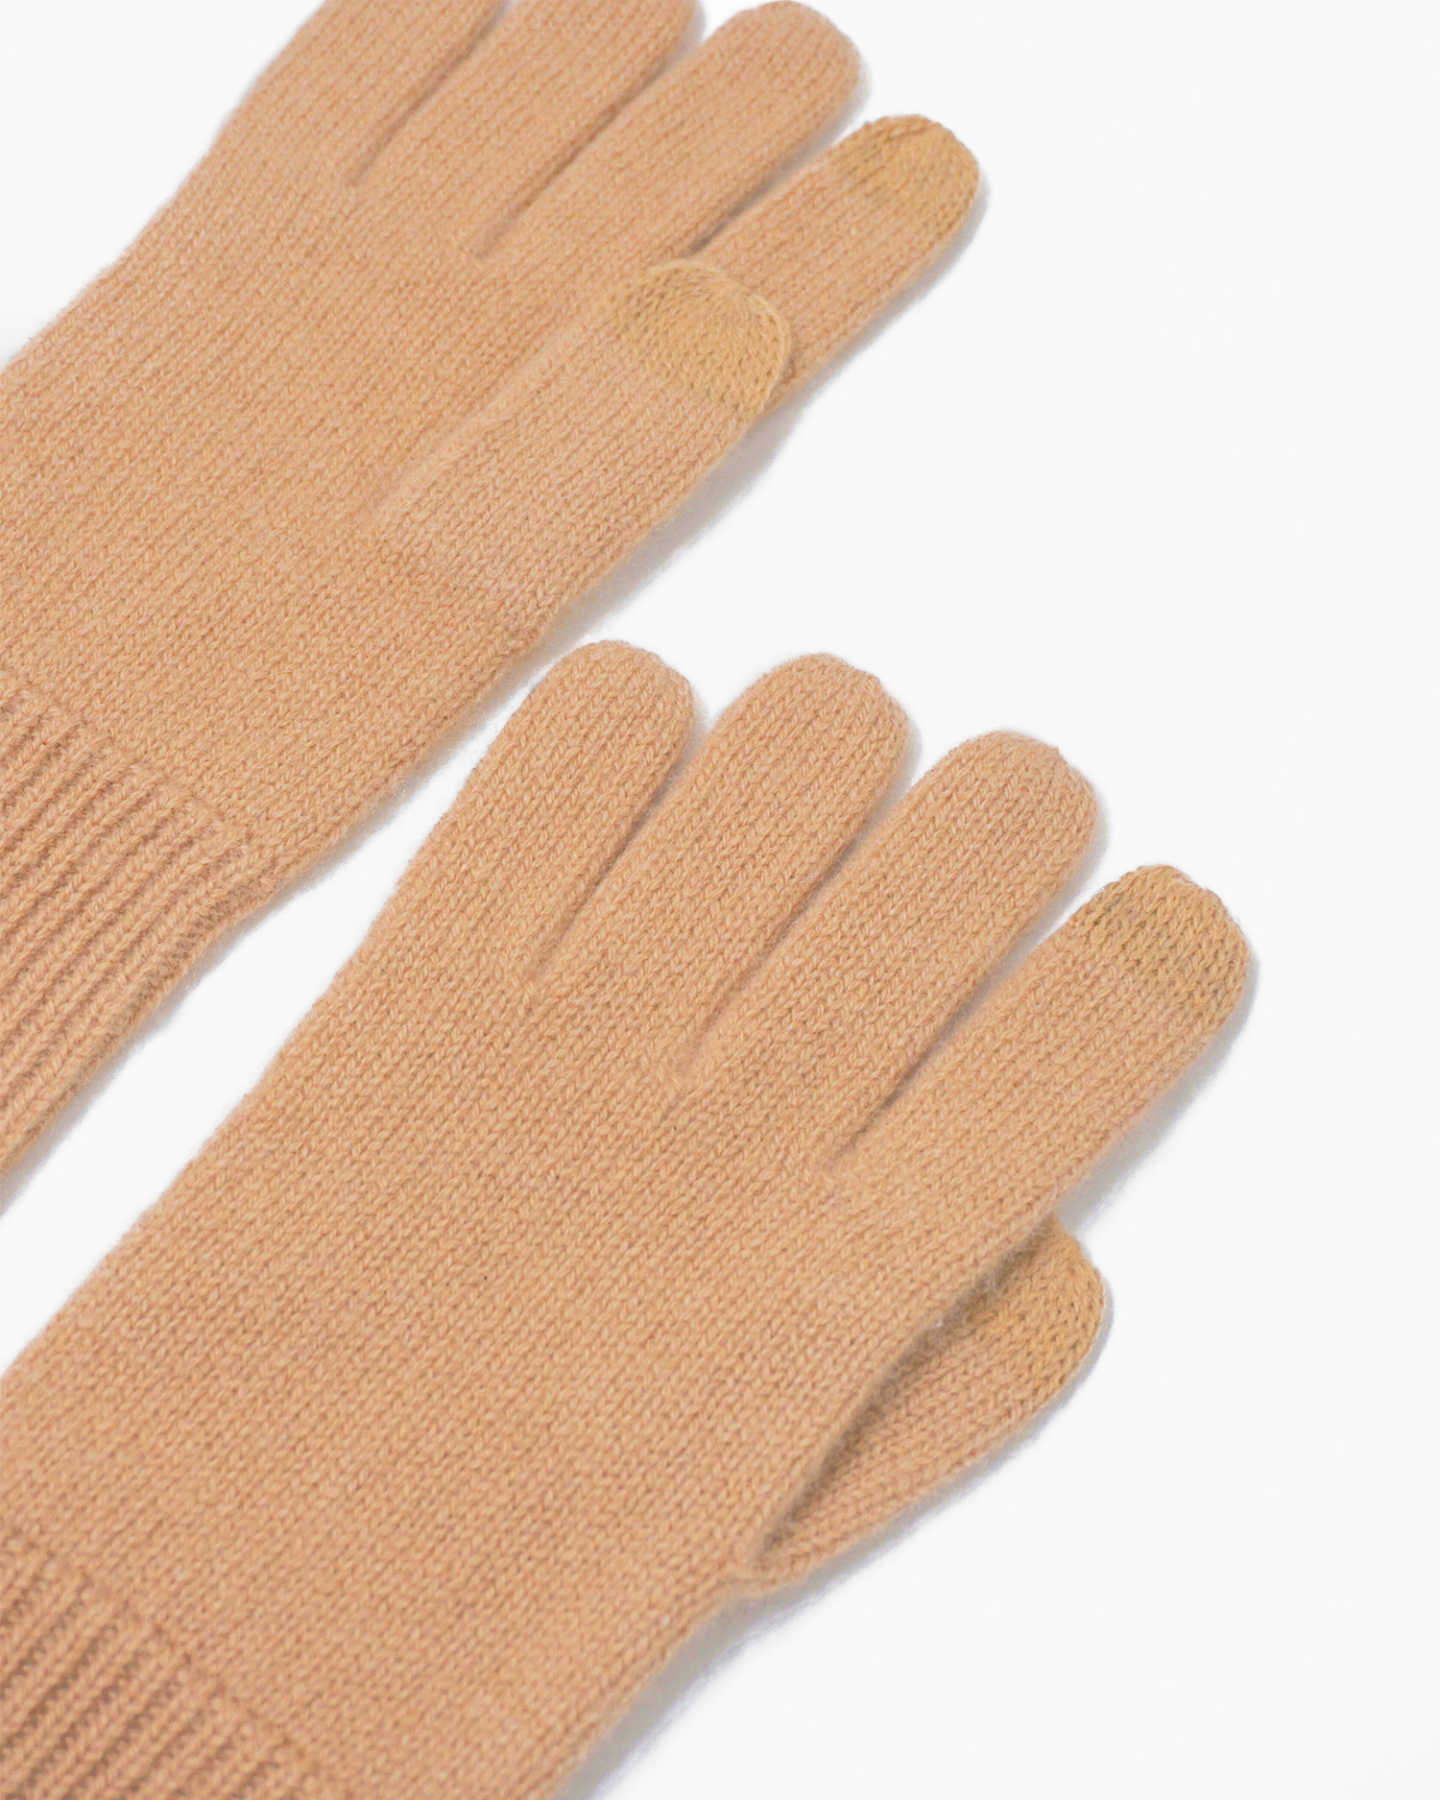 Mongolian Cashmere Gloves - Camel - 2